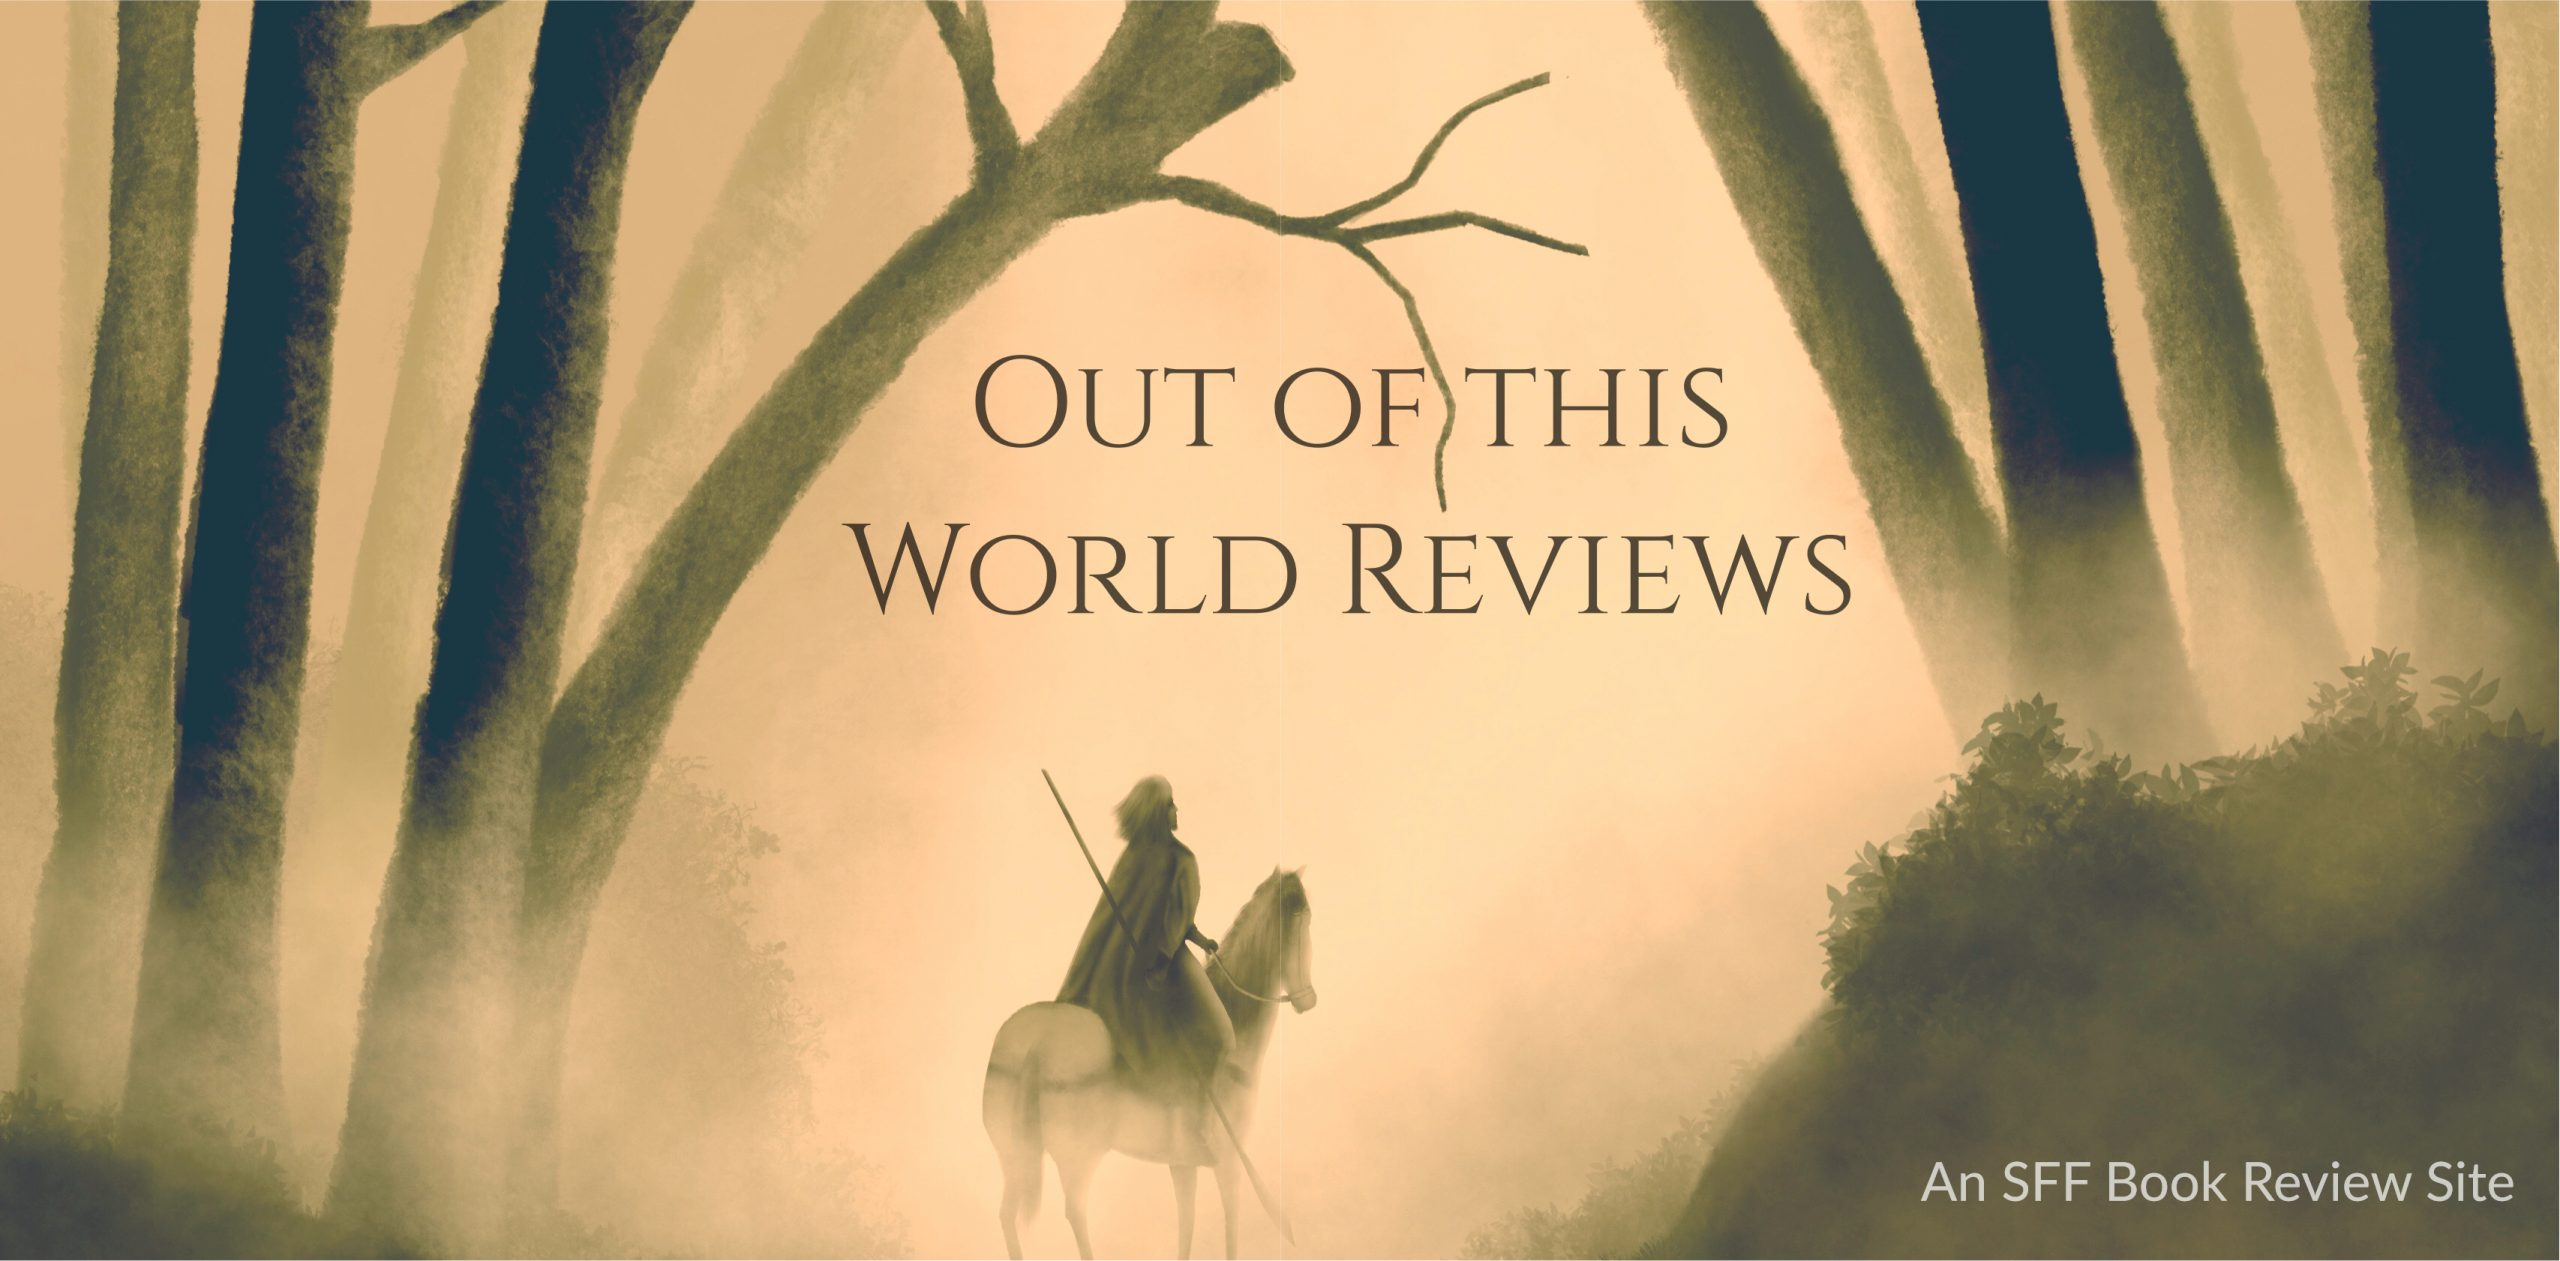 Out of this World Reviews